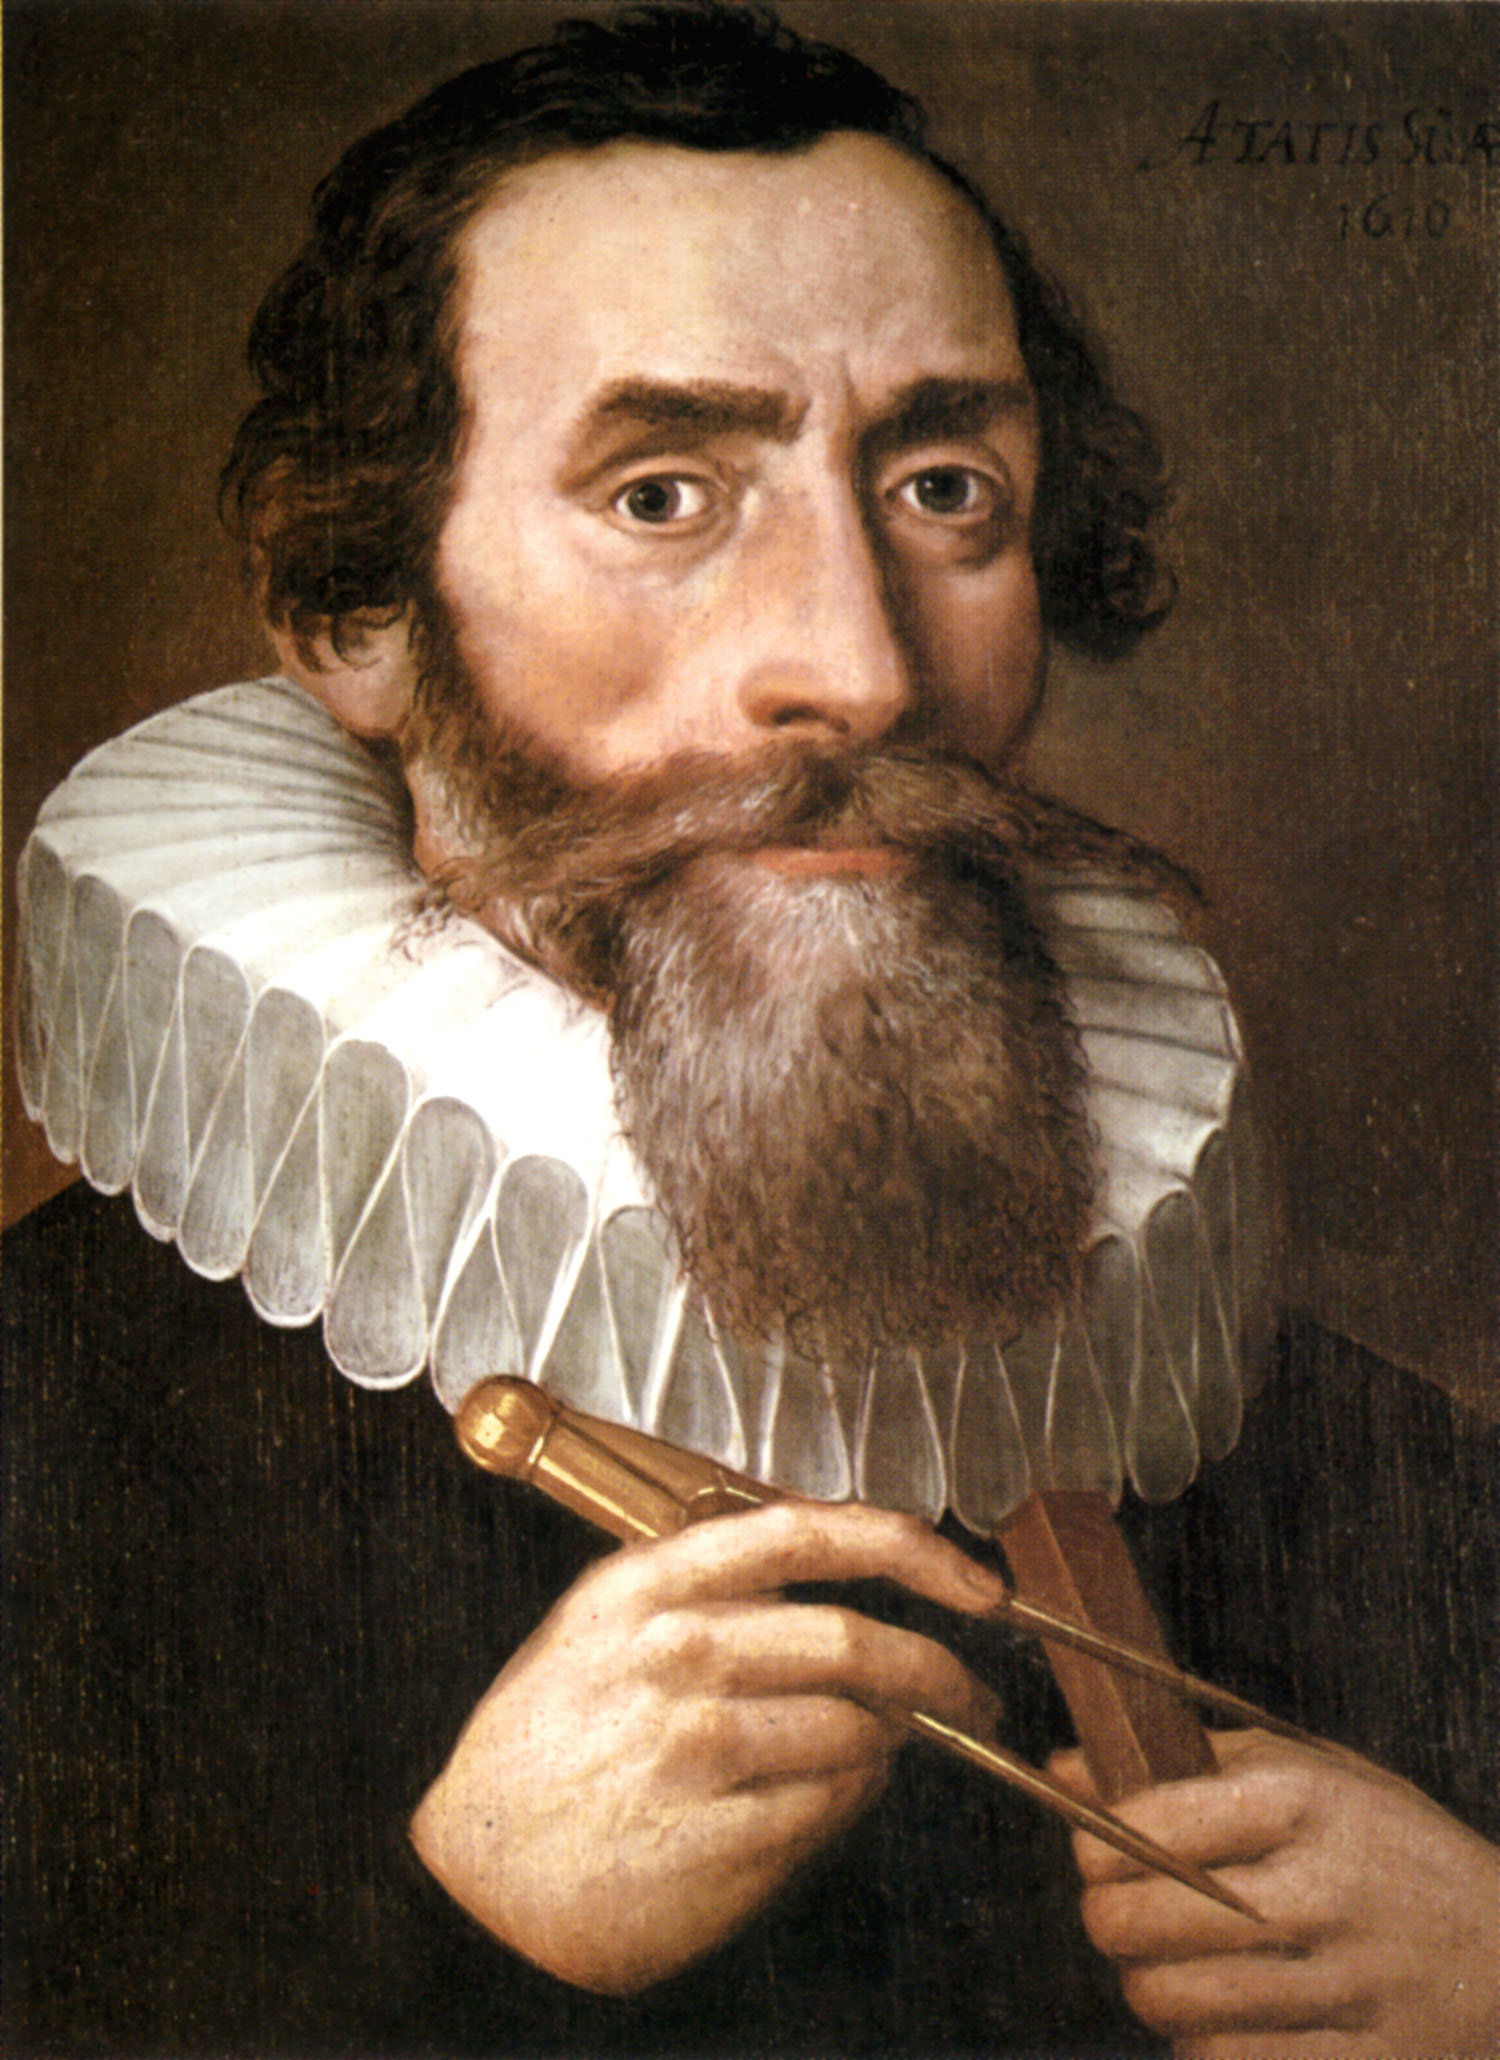 5 Quick Facts About 'Johannes Kepler' Which You Need To Know